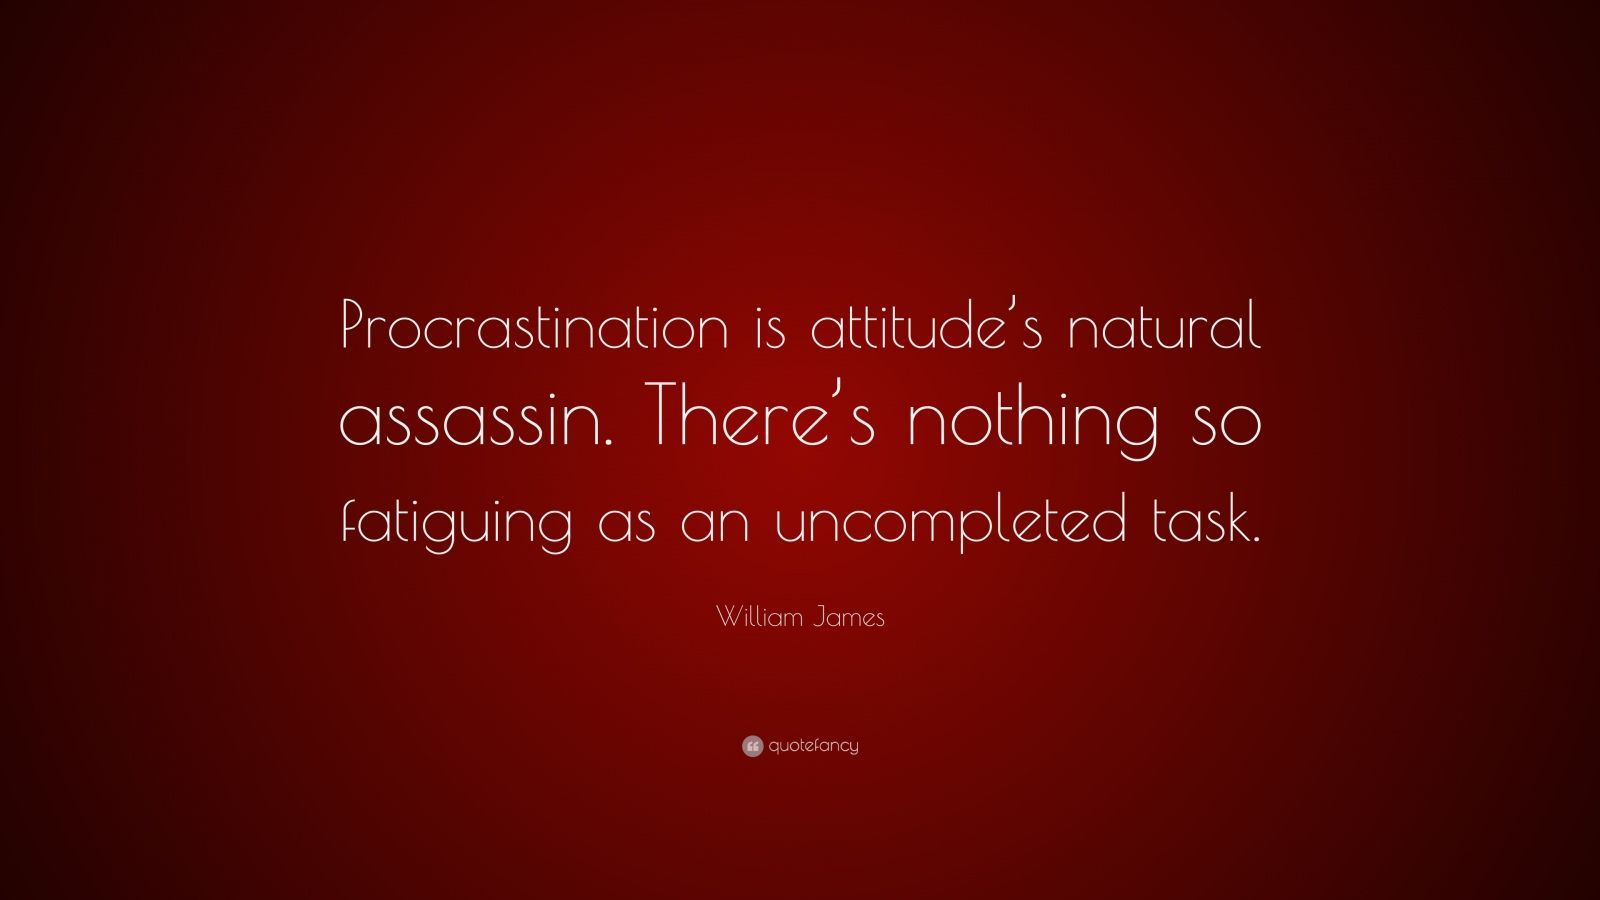 """William James Quote: """"Procrastination is attitude's natural assassin. There's nothing so fatiguing as an uncompleted task."""""""